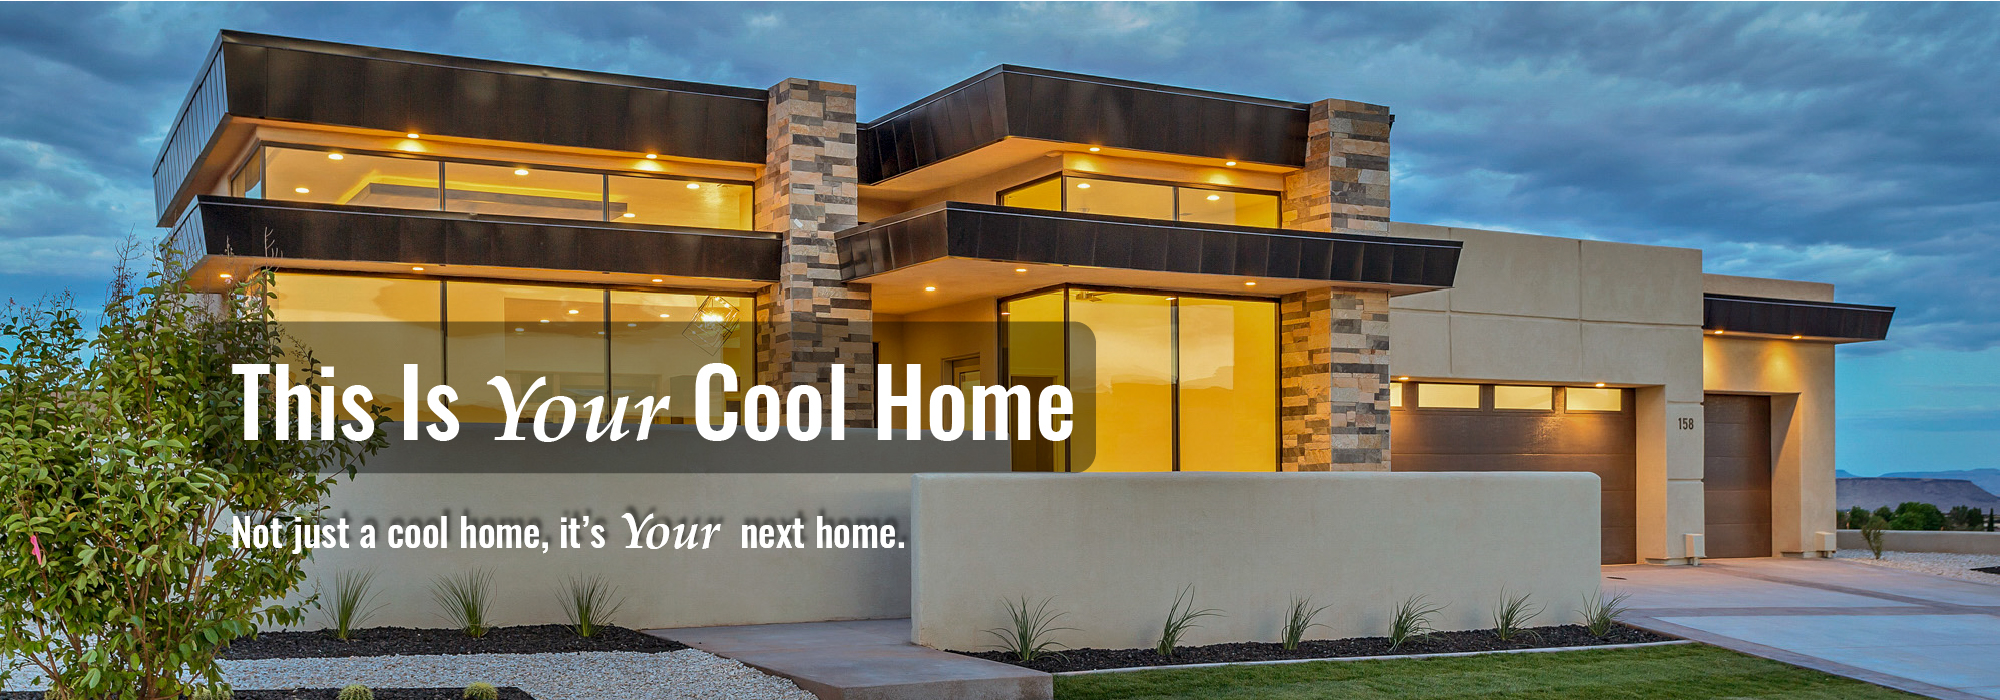 Cool_Homes_Slider2